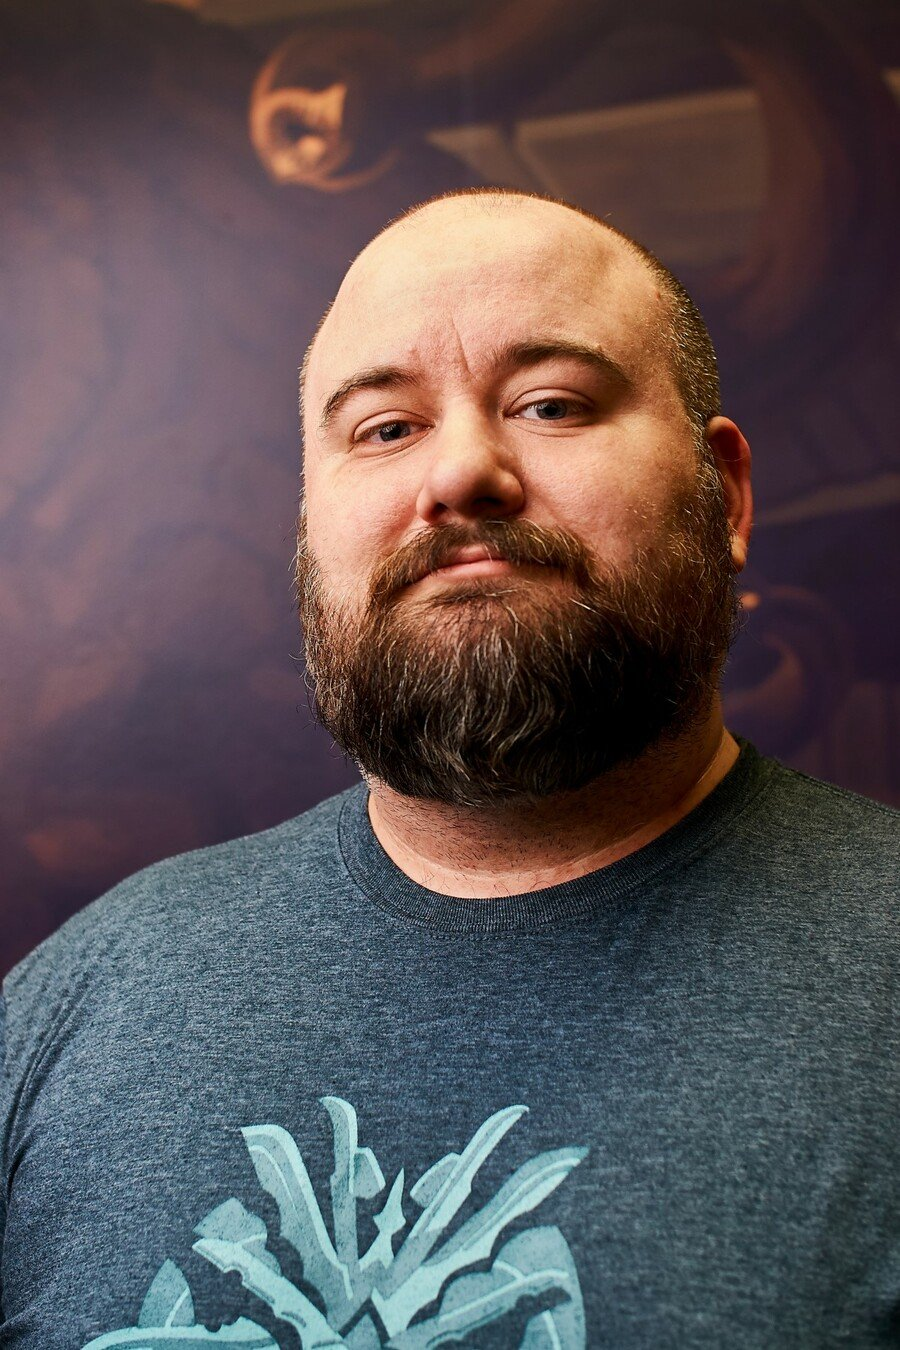 Luke Rideout, Producer at Beamdog